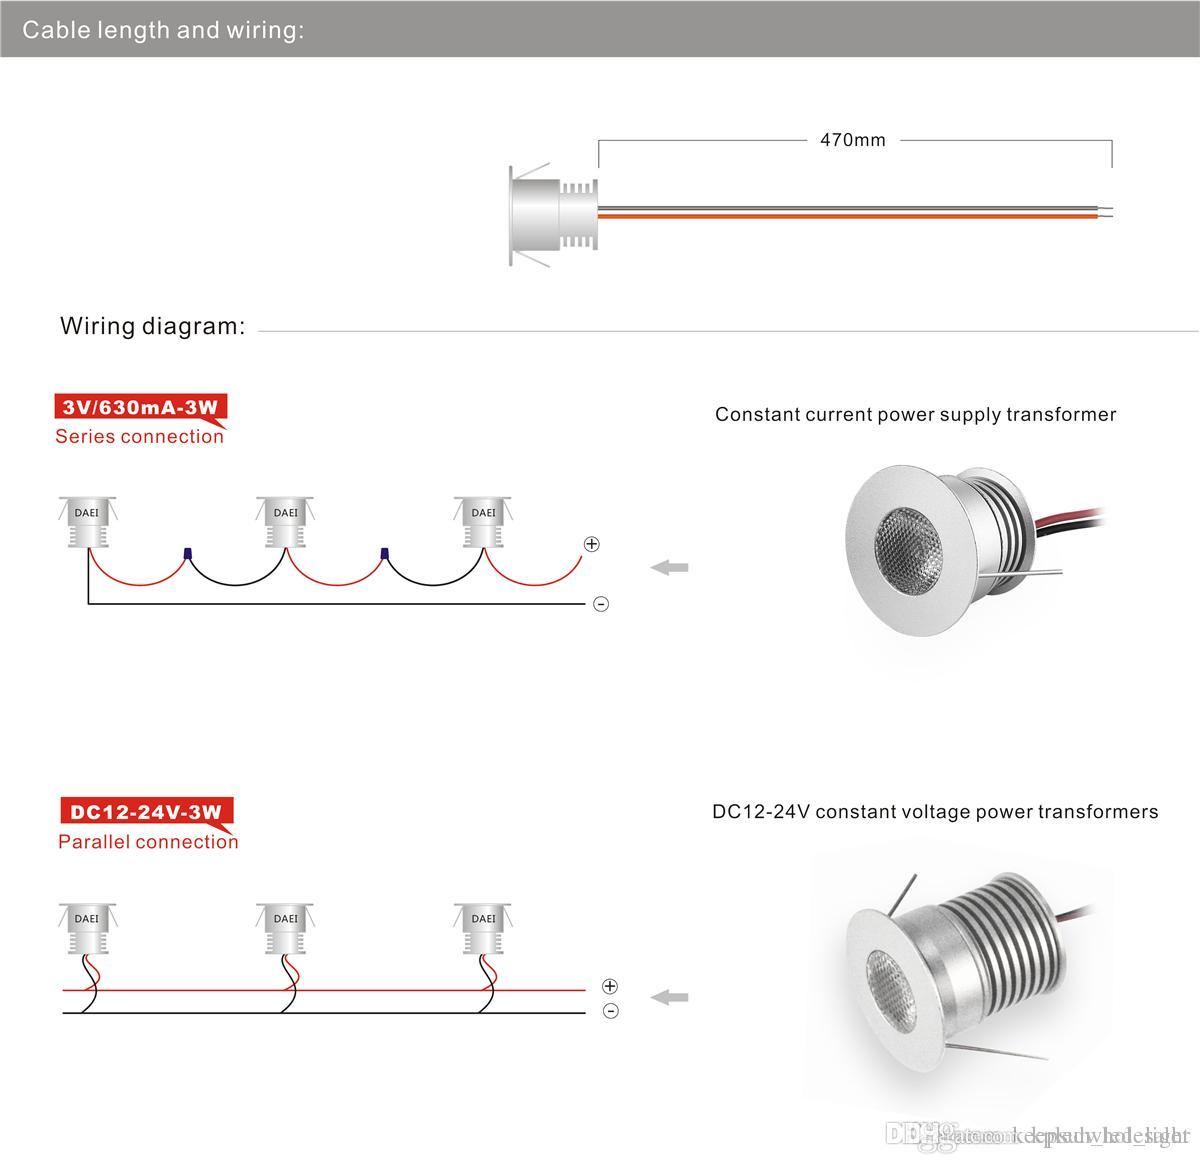 Outstanding wiring diagram for downlights vignette electrical and enchanting wiring multiple downlights images wiring diagram ideas asfbconference2016 Image collections